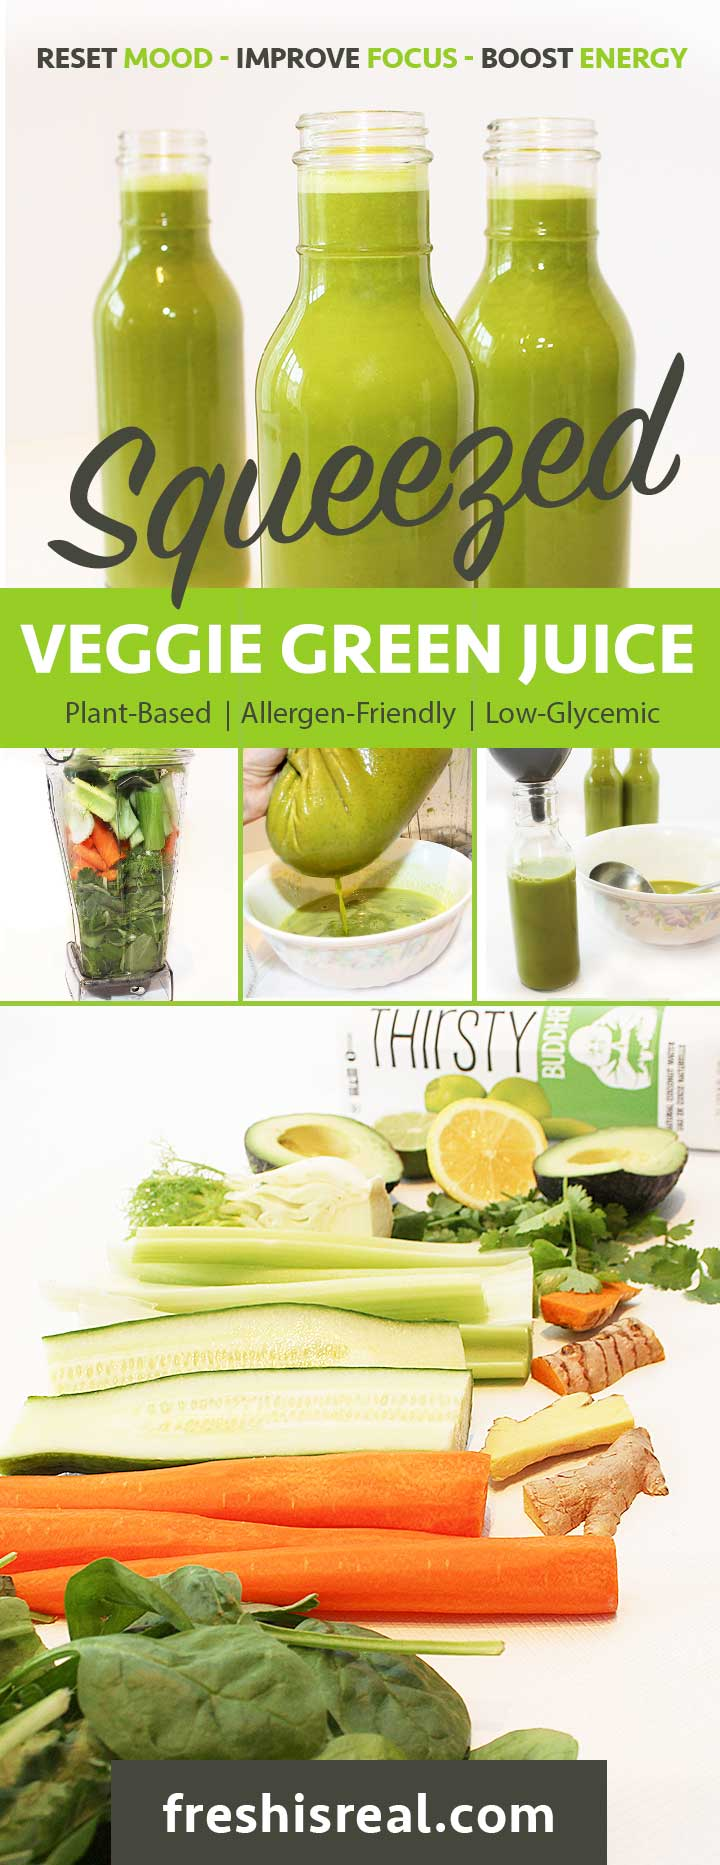 Easy, Nutrient-Dense, Mood Boosting Squeezed Veggie Green Juice Recipe. Ideal breakfast and snack, as it will not spike your blood sugar. Chantal | freshisreal.com